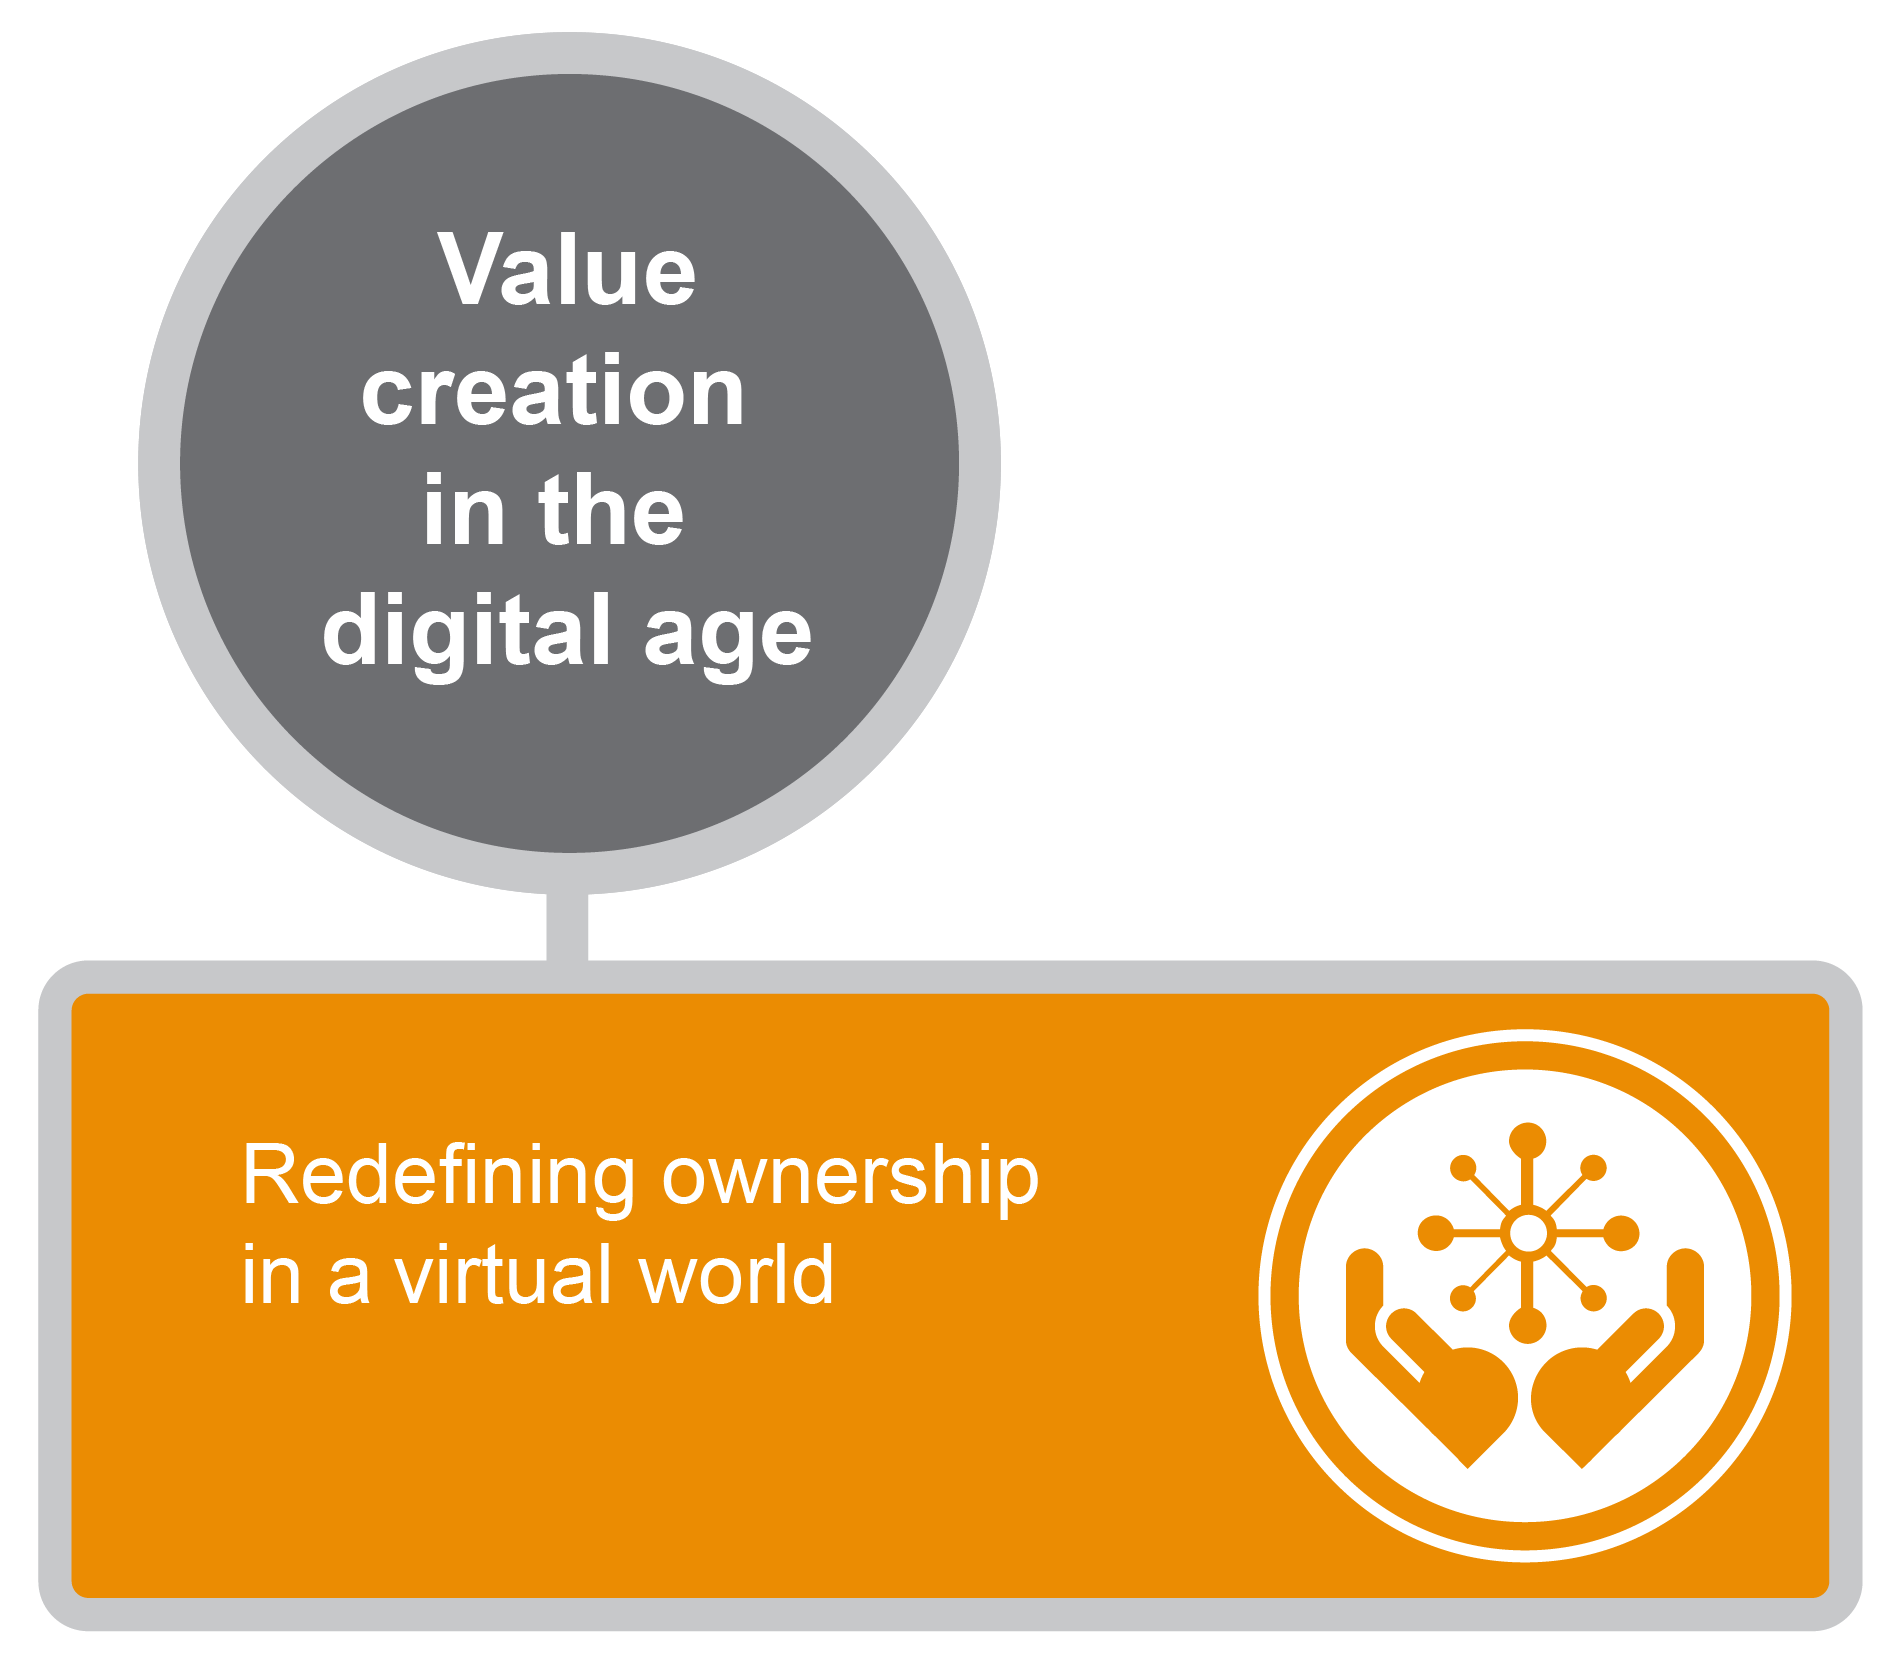 Value creation in the digital age graphic